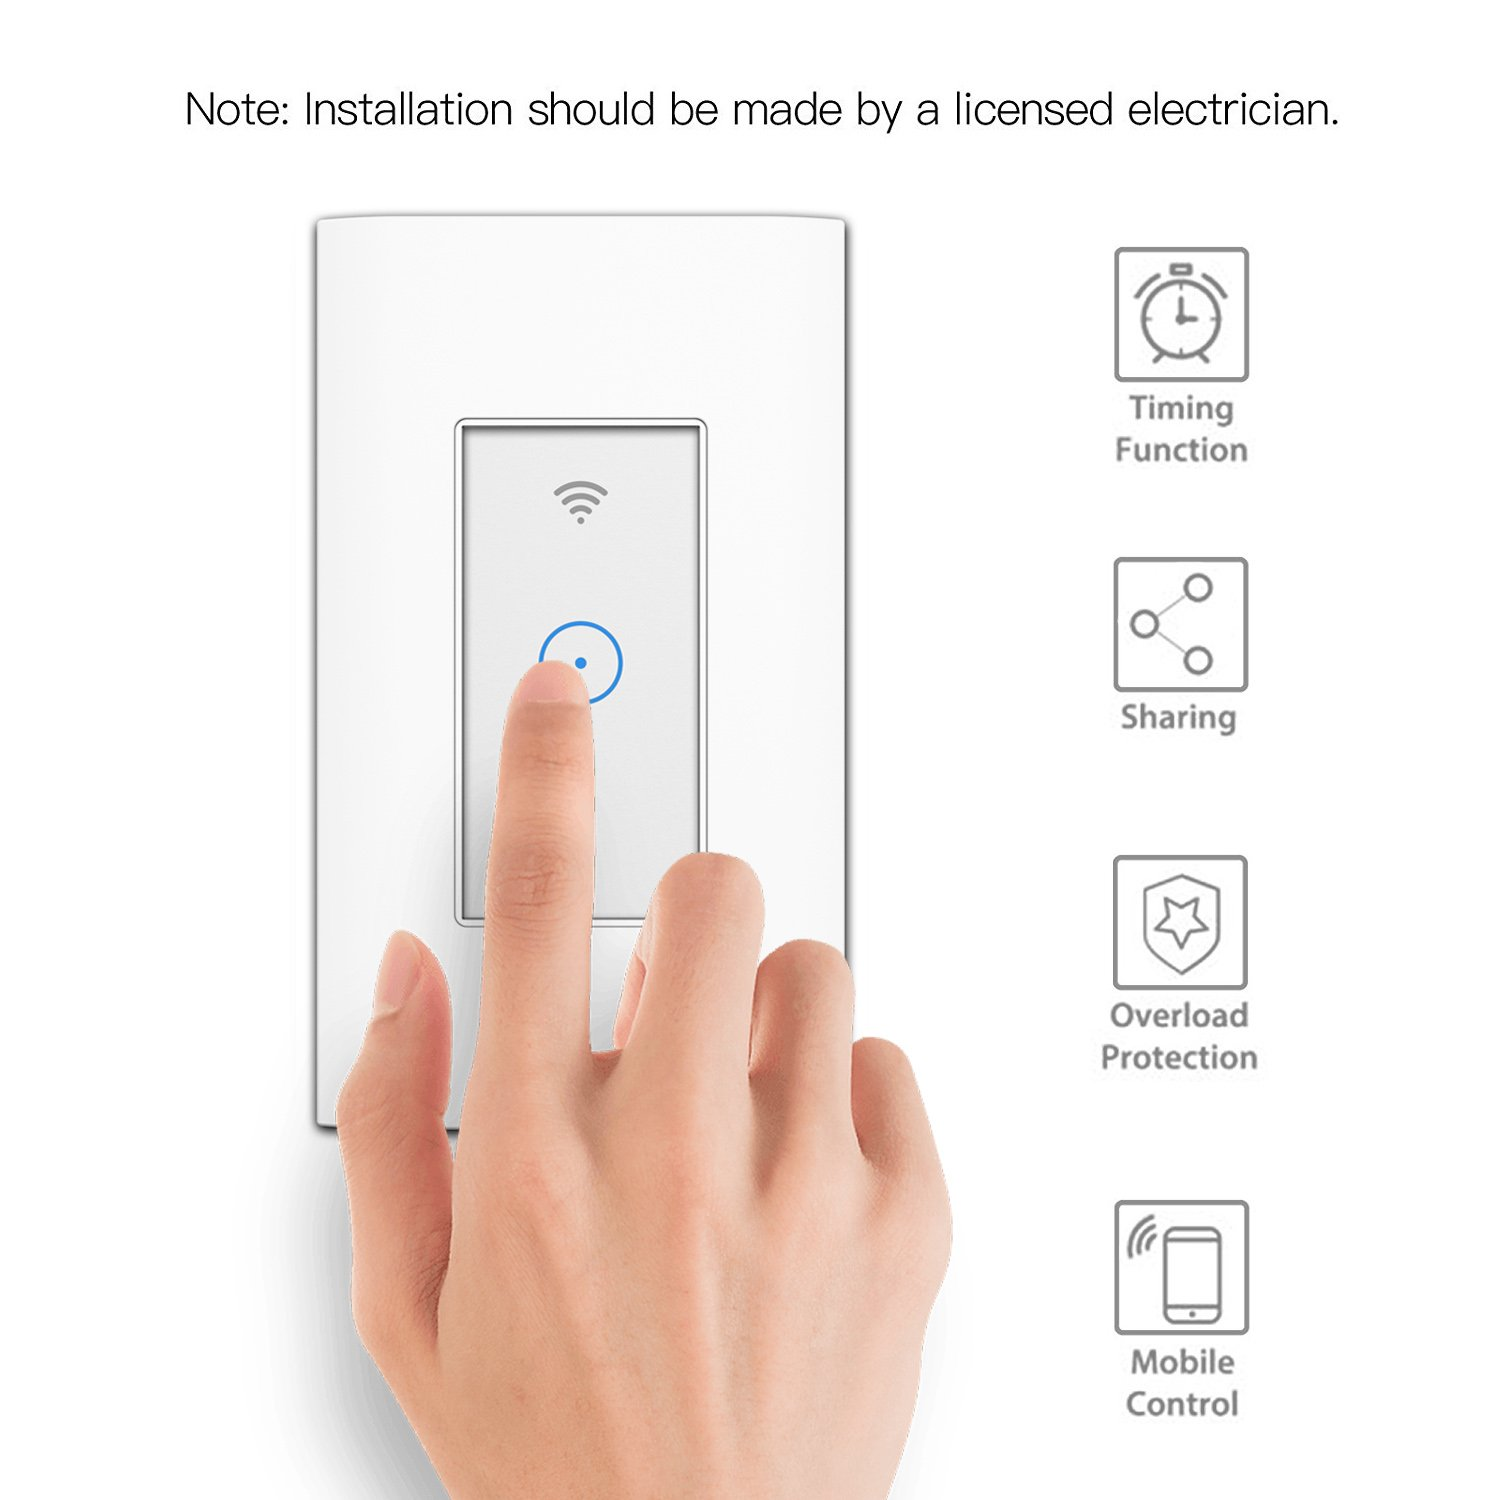 Smart Light Switch Wi Fi In Wall Wireless Compatible Singer Heater Wiring Diagram With Amazon Alexa Remote Control Your Fixtures From Anywhere Timing Function